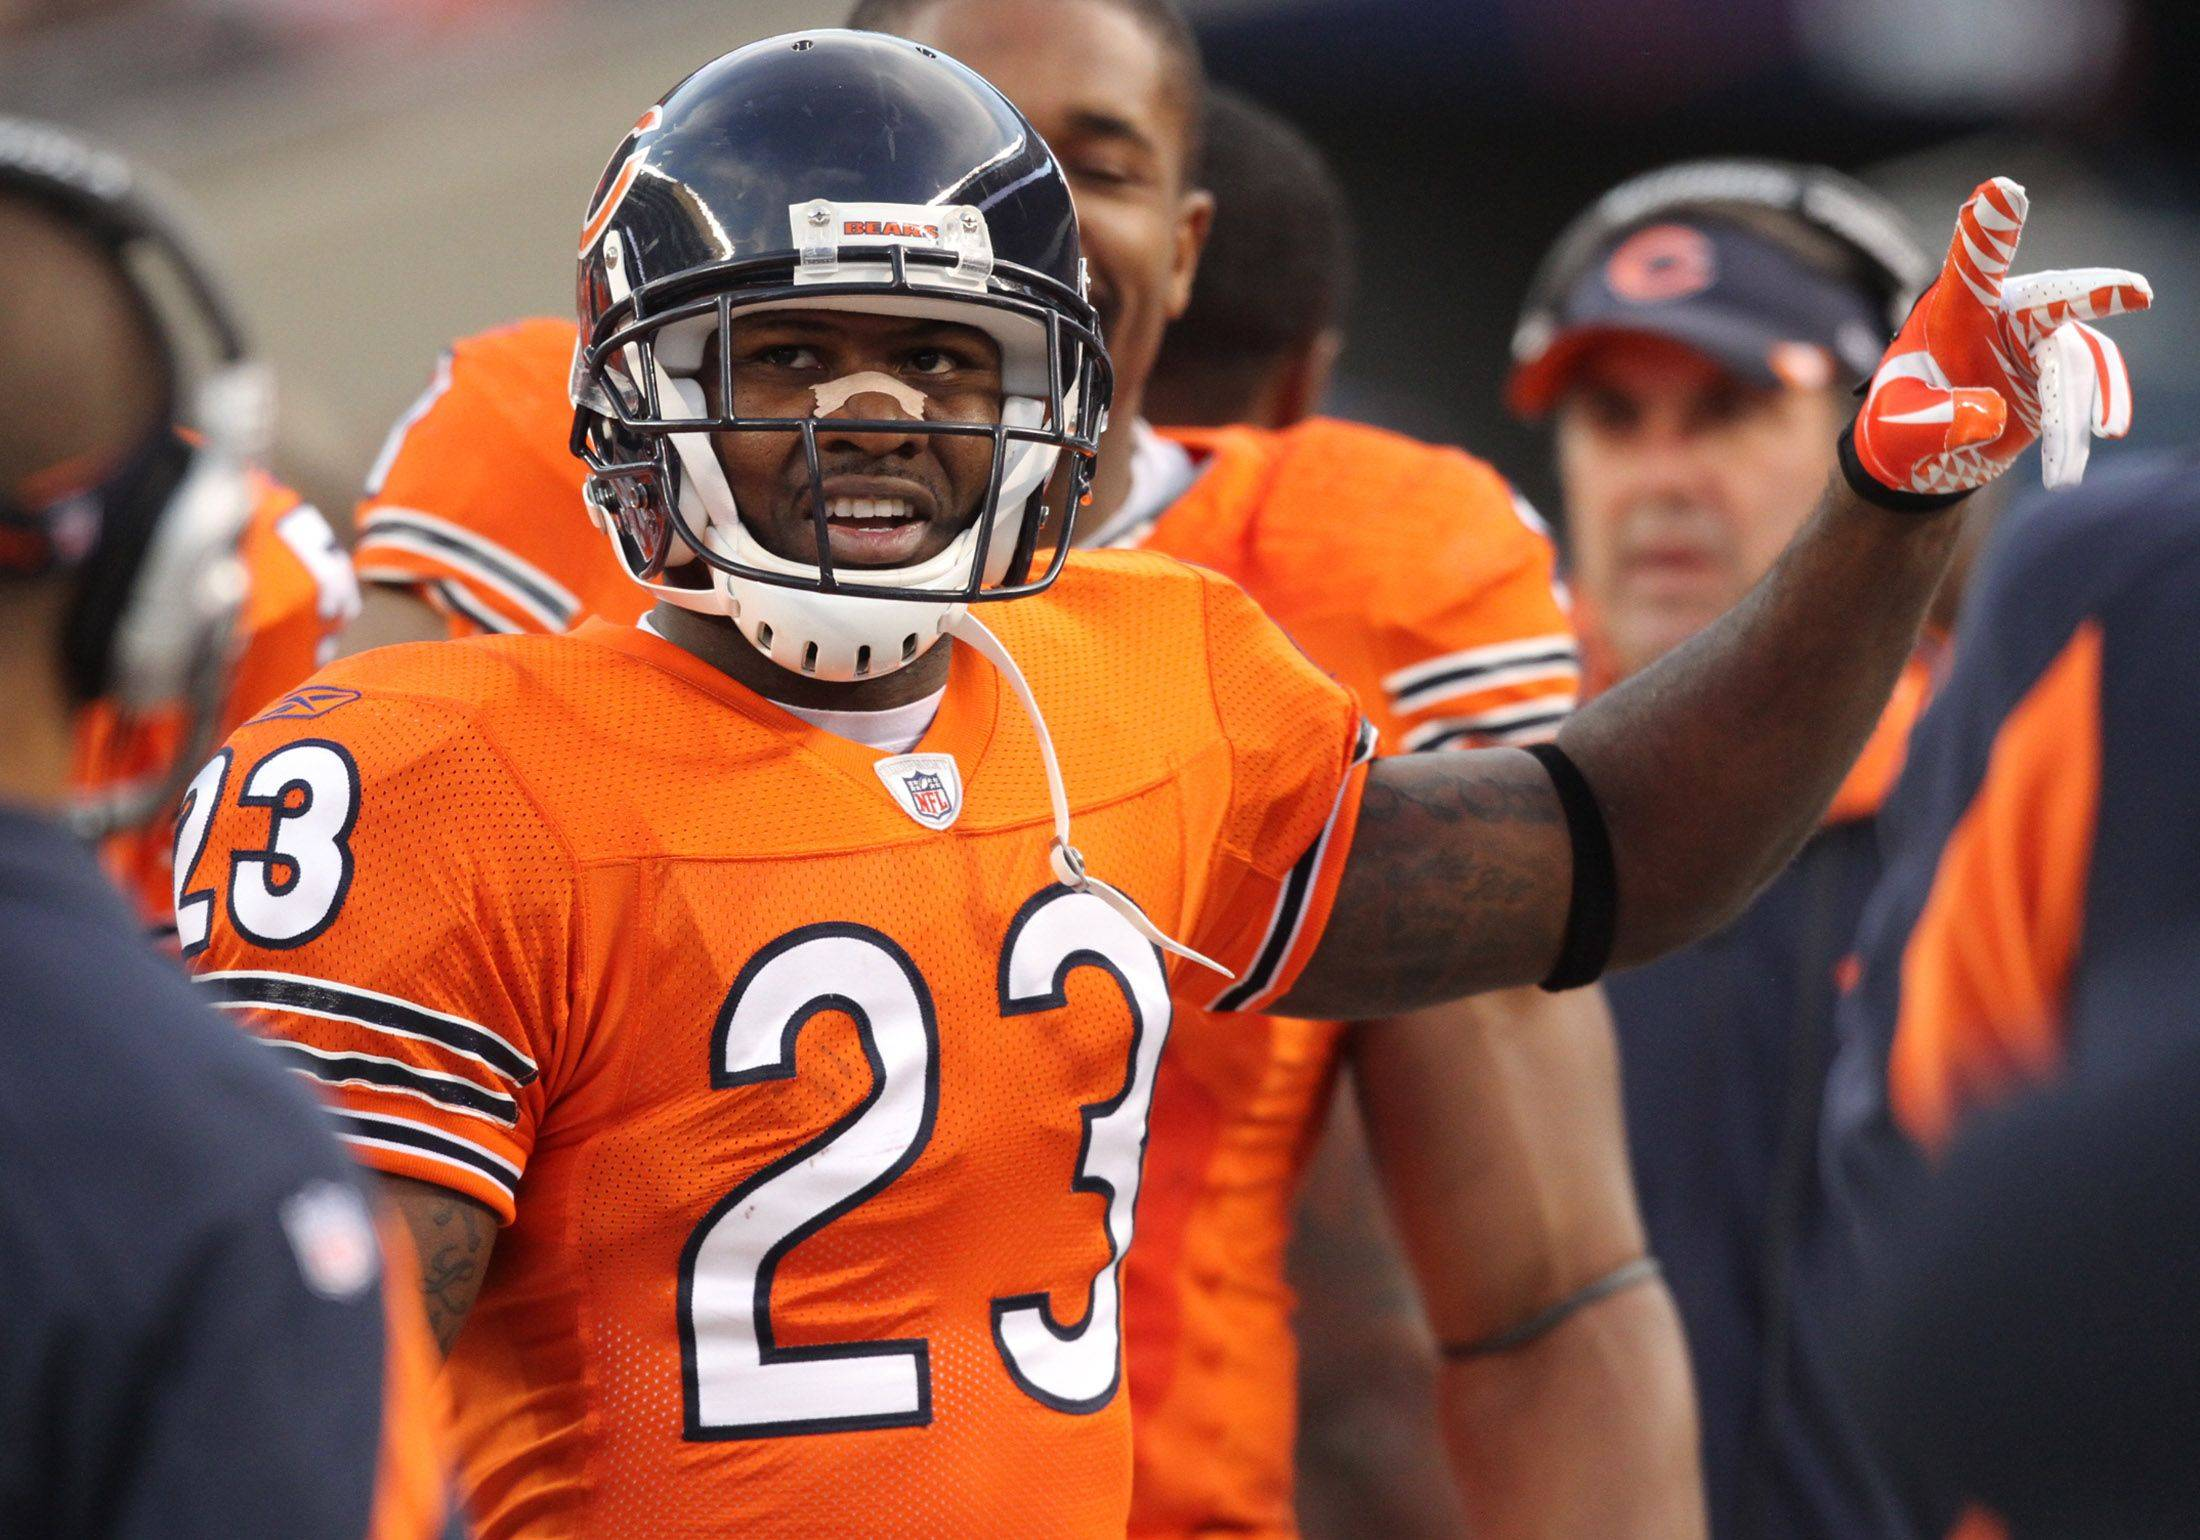 Bears dominate in 37-13 win over Detroit